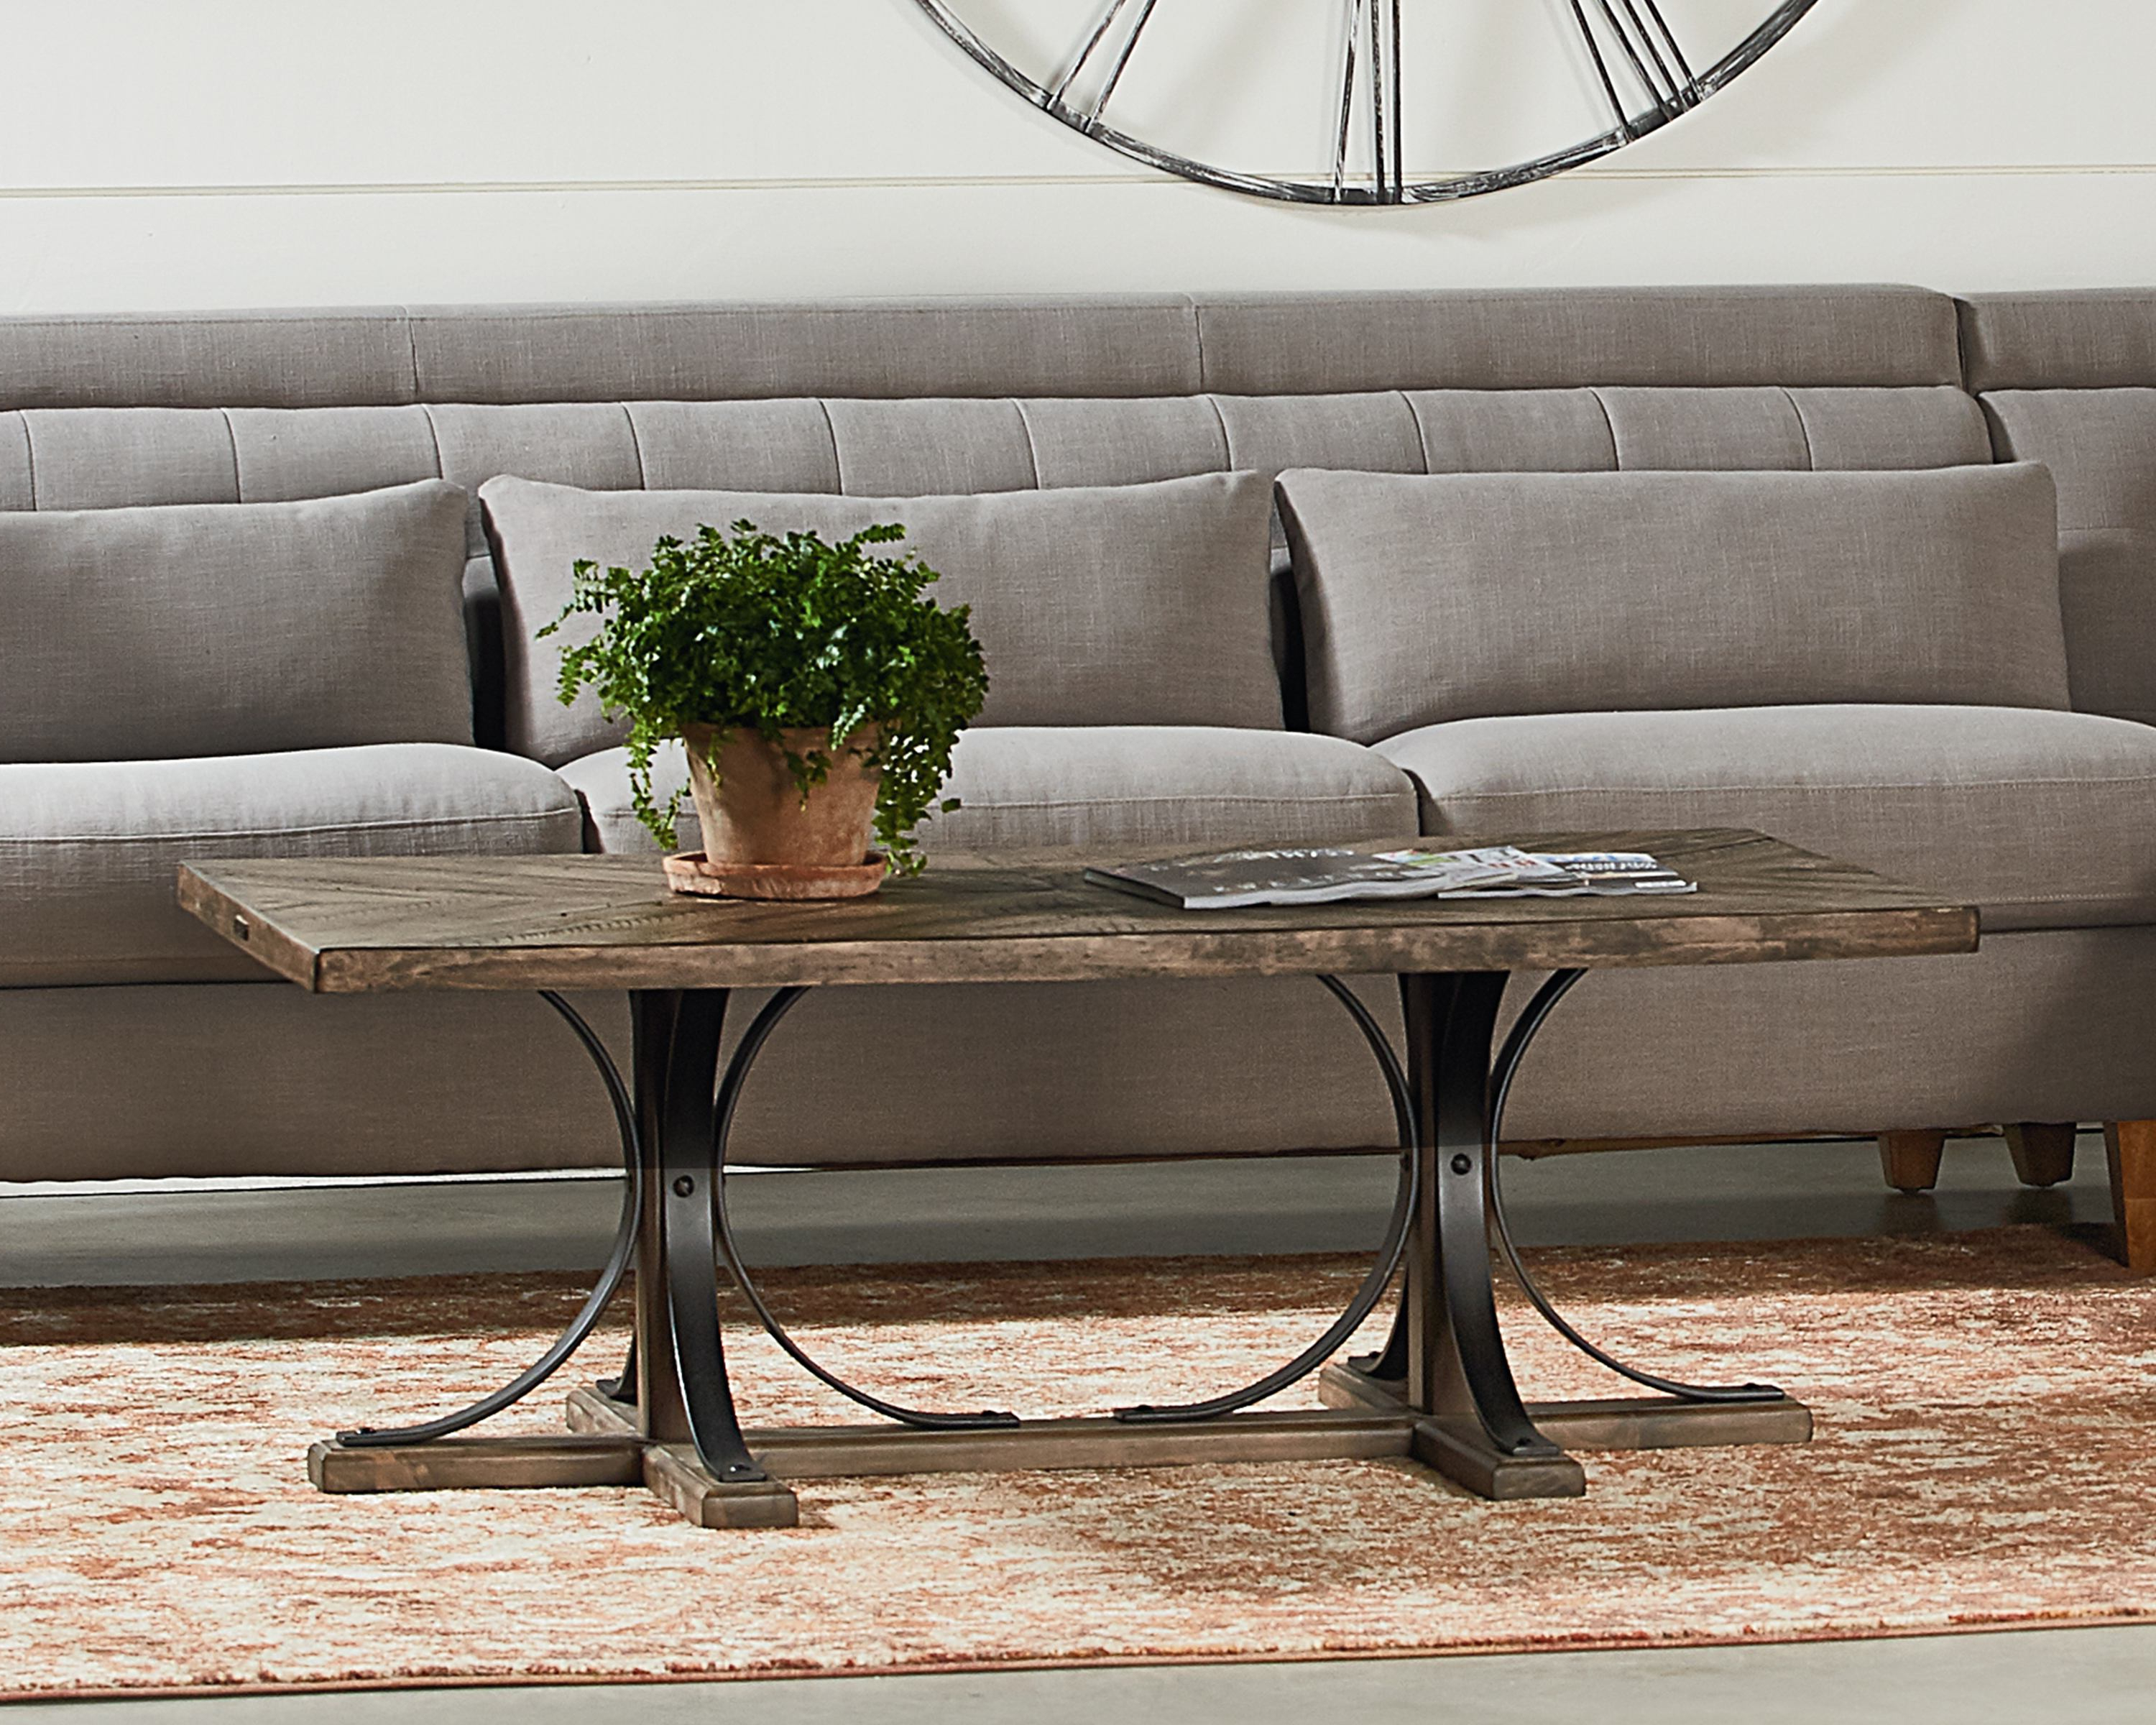 Best And Newest Iron Trestle Coffee Table – Magnolia Home With Regard To Magnolia Home Iron Trestle Cocktail Tables (View 2 of 20)